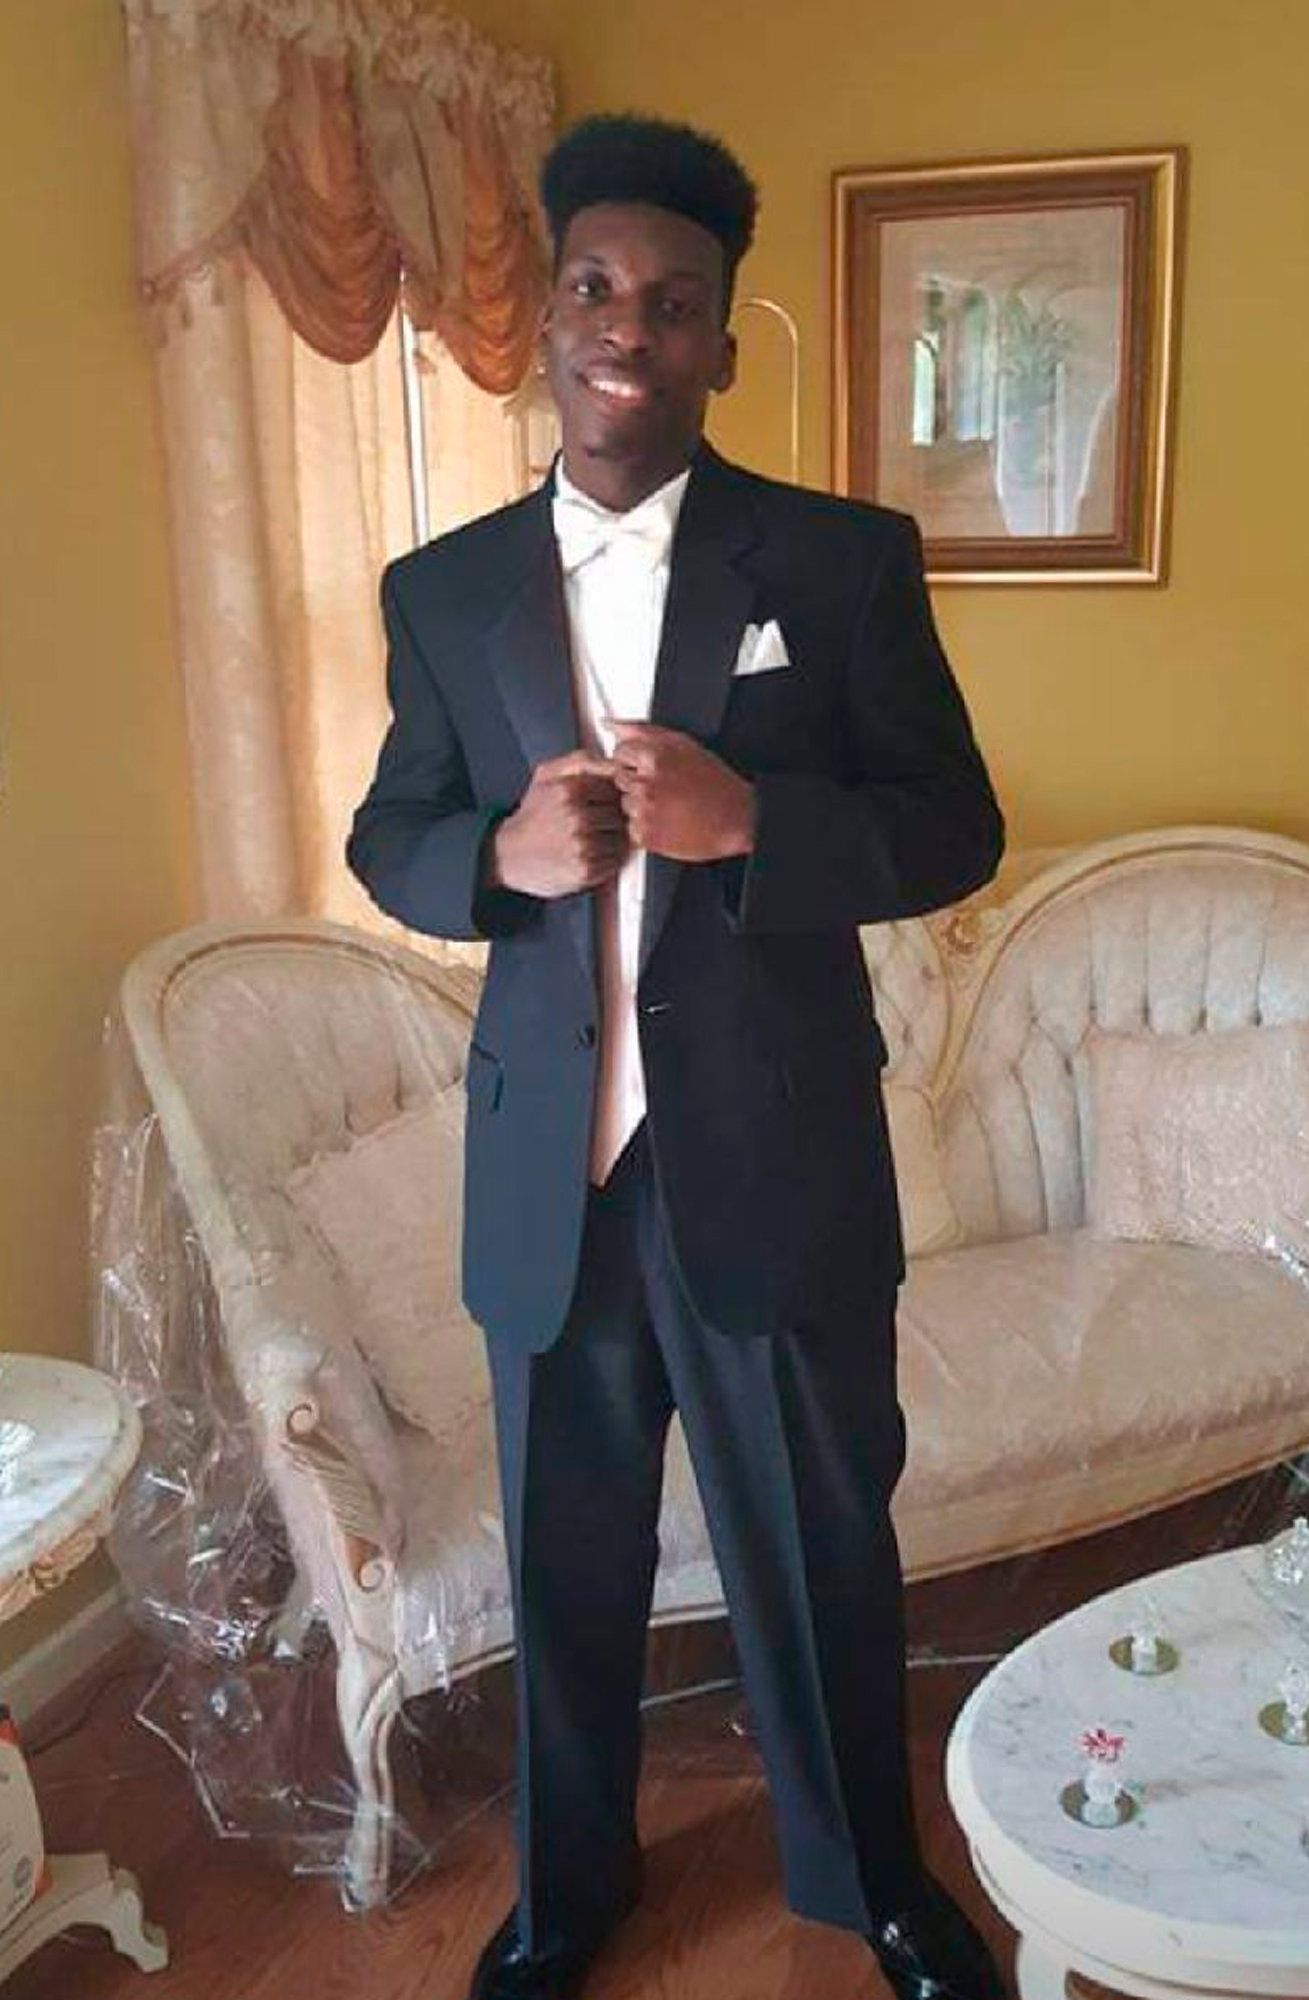 Emantic Bradford Was Shot By Police From Behind At Alabama Mall, Autopsy